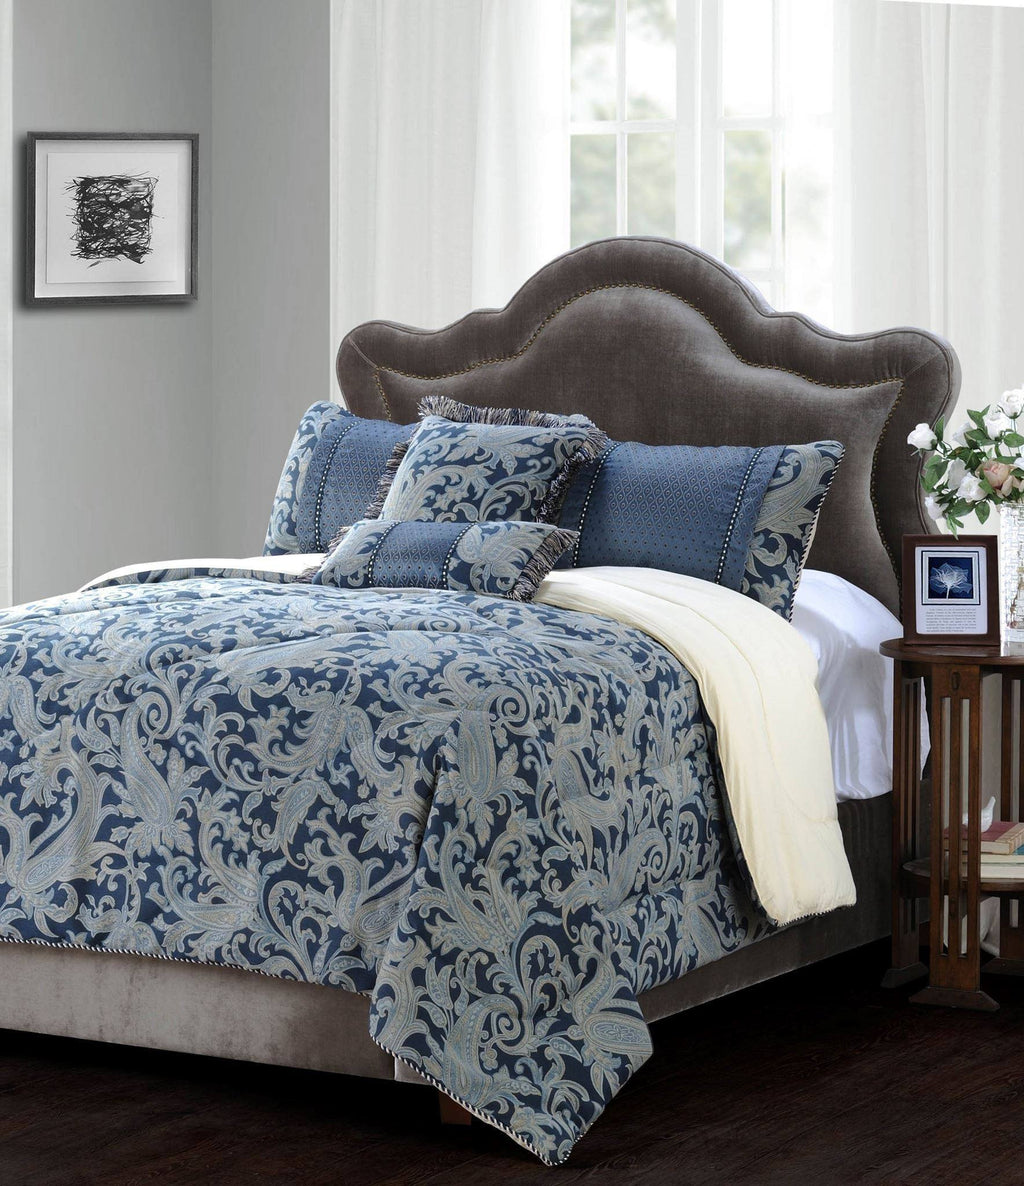 Jennifer Taylor 5 Piece Comforter Set in Blue Gold   upgrading quality.myshopify.com